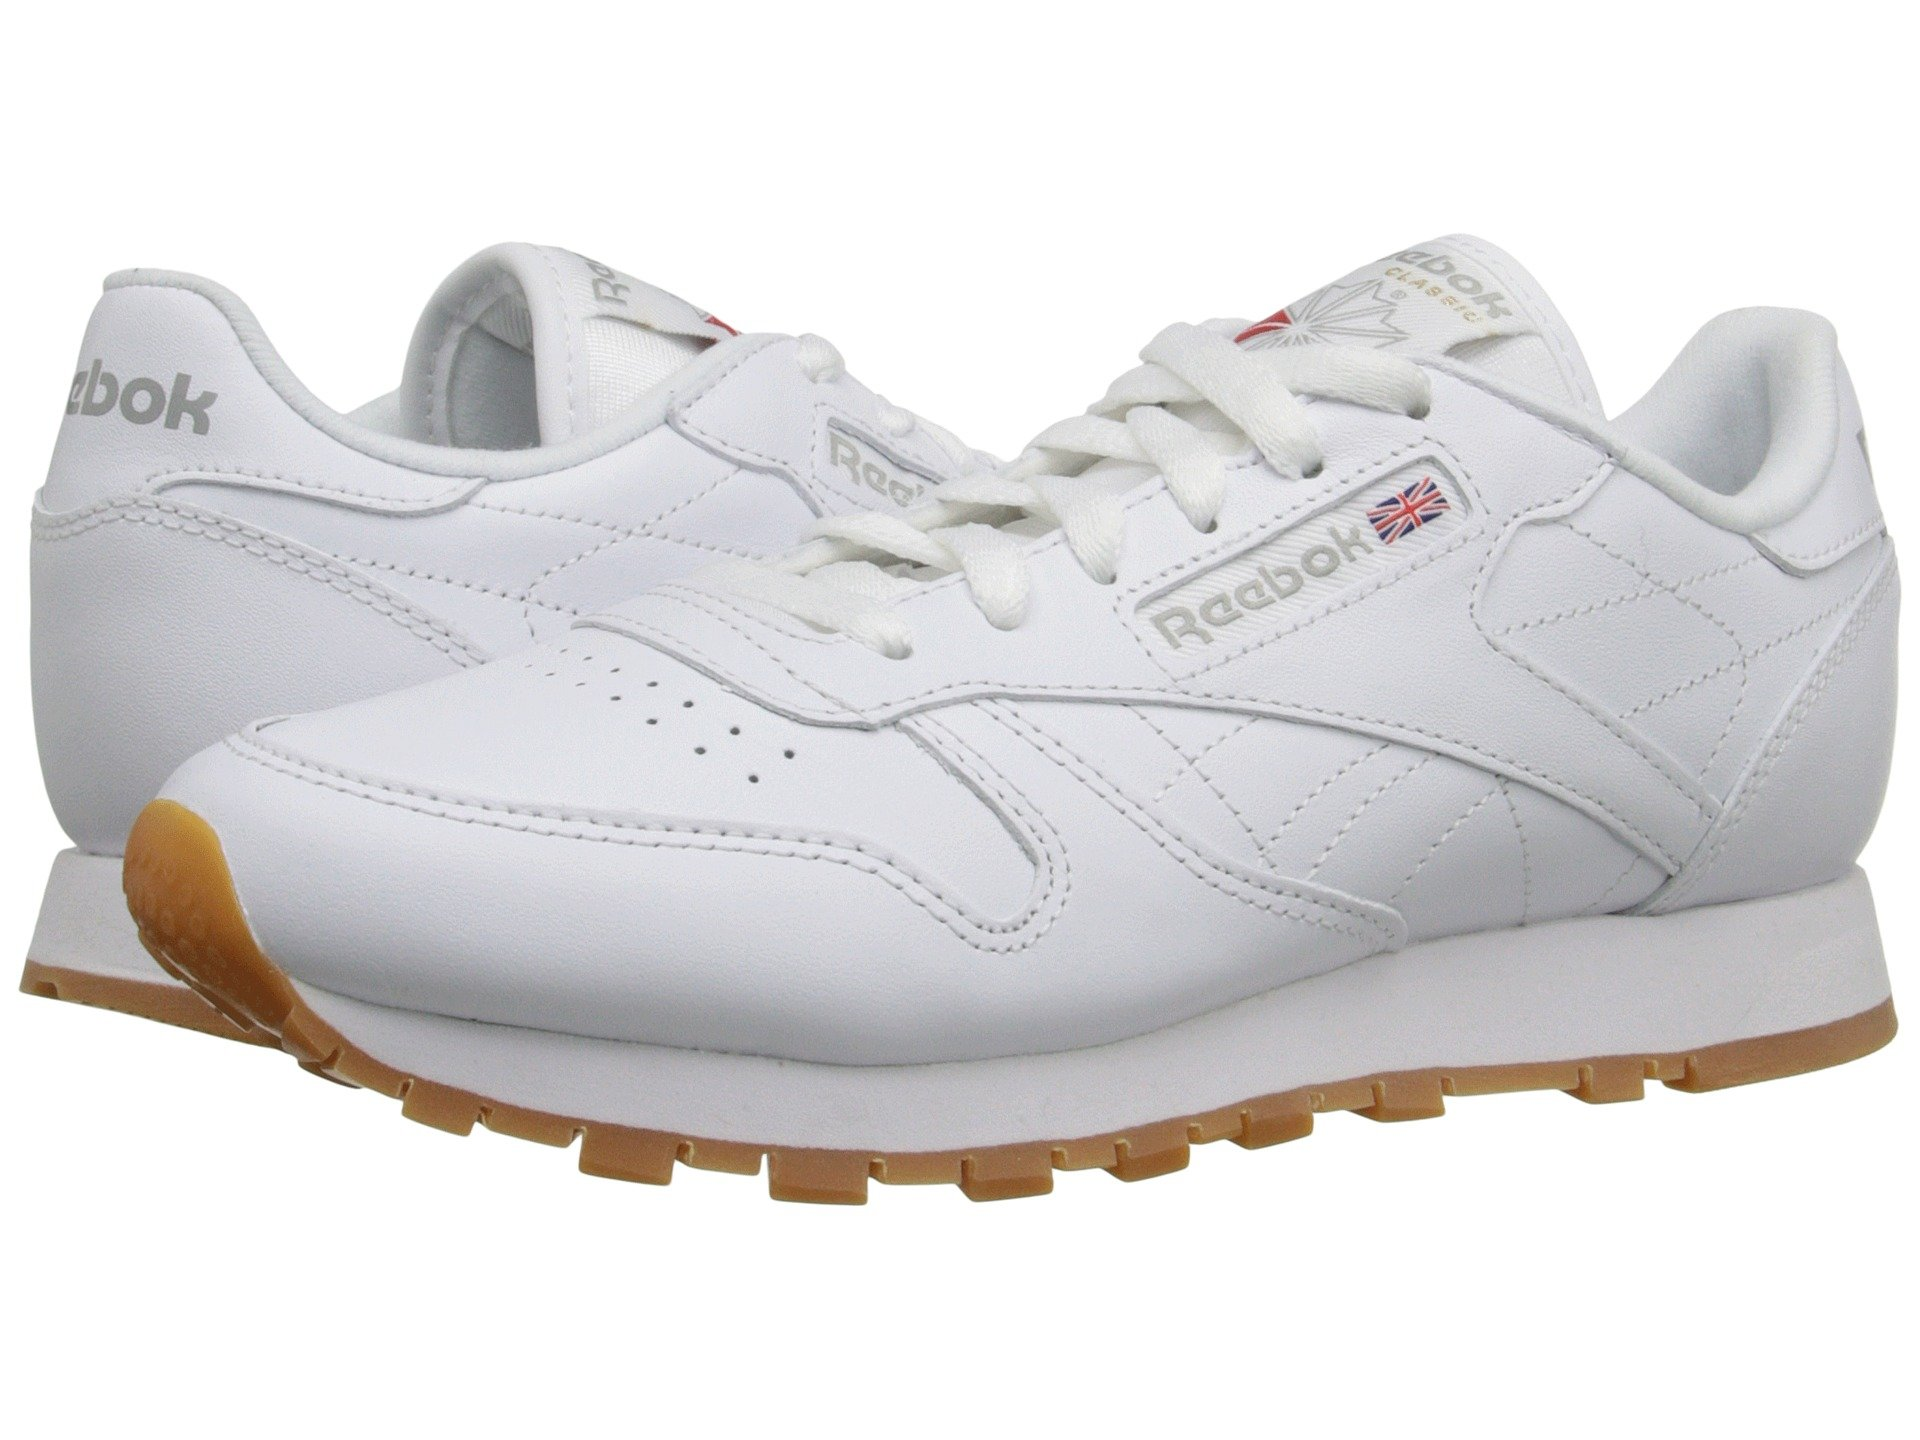 7a817bb12b5fae White Gum. 758. Reebok Lifestyle. Classic Leather